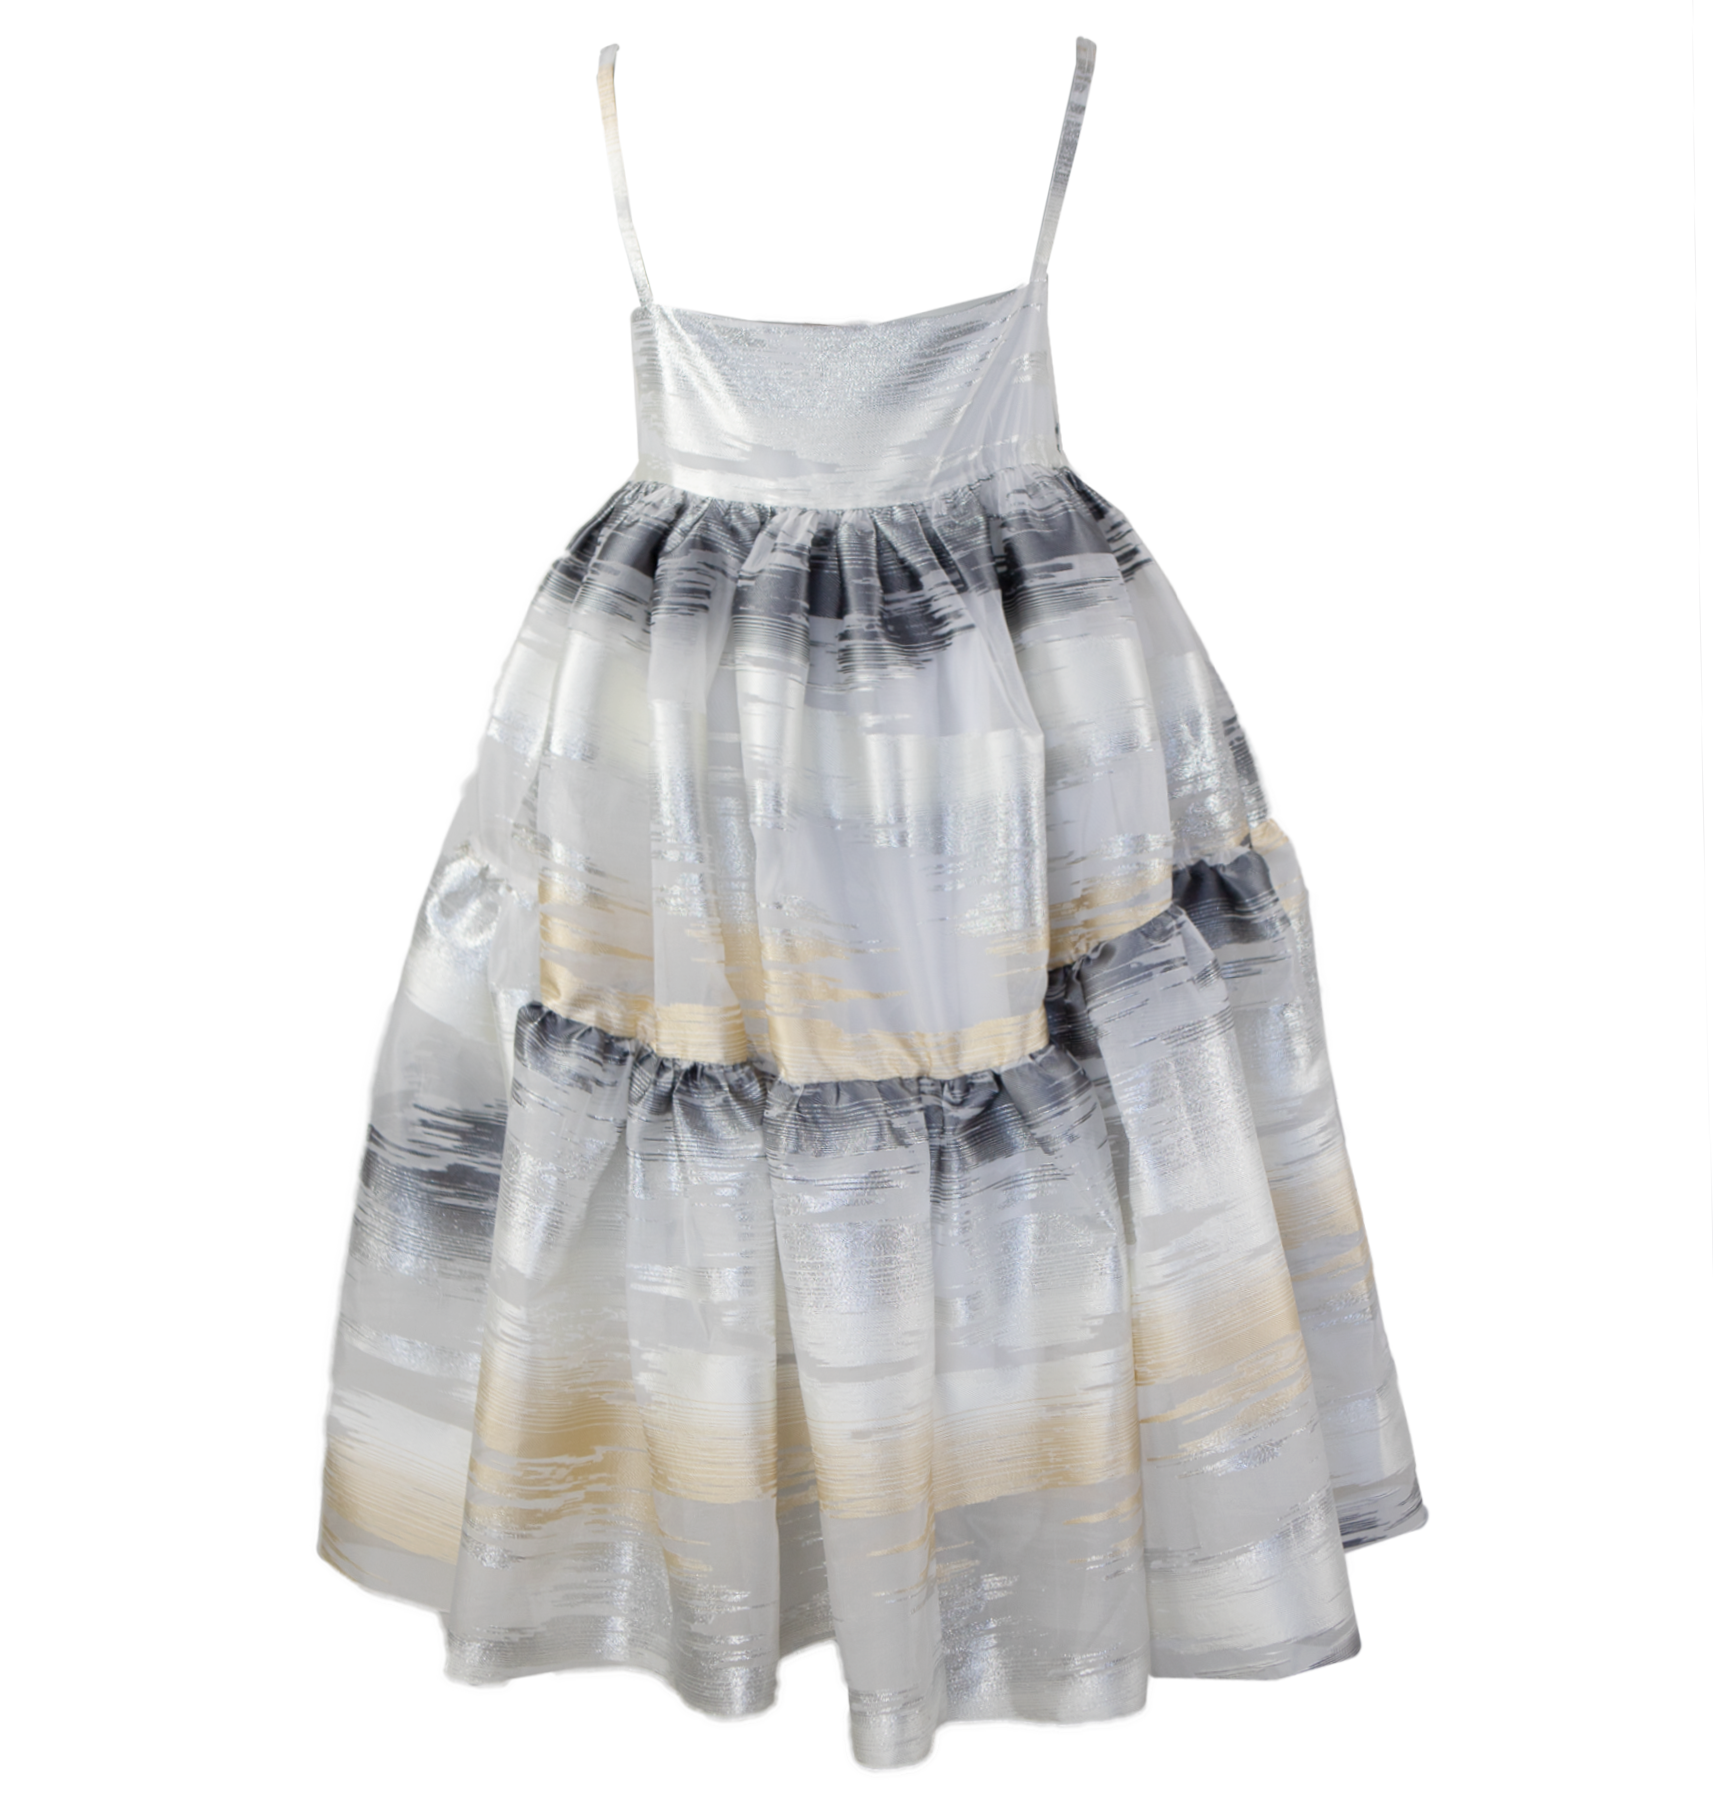 Glimmer Silver & Gold, The Perfect Summer Dress